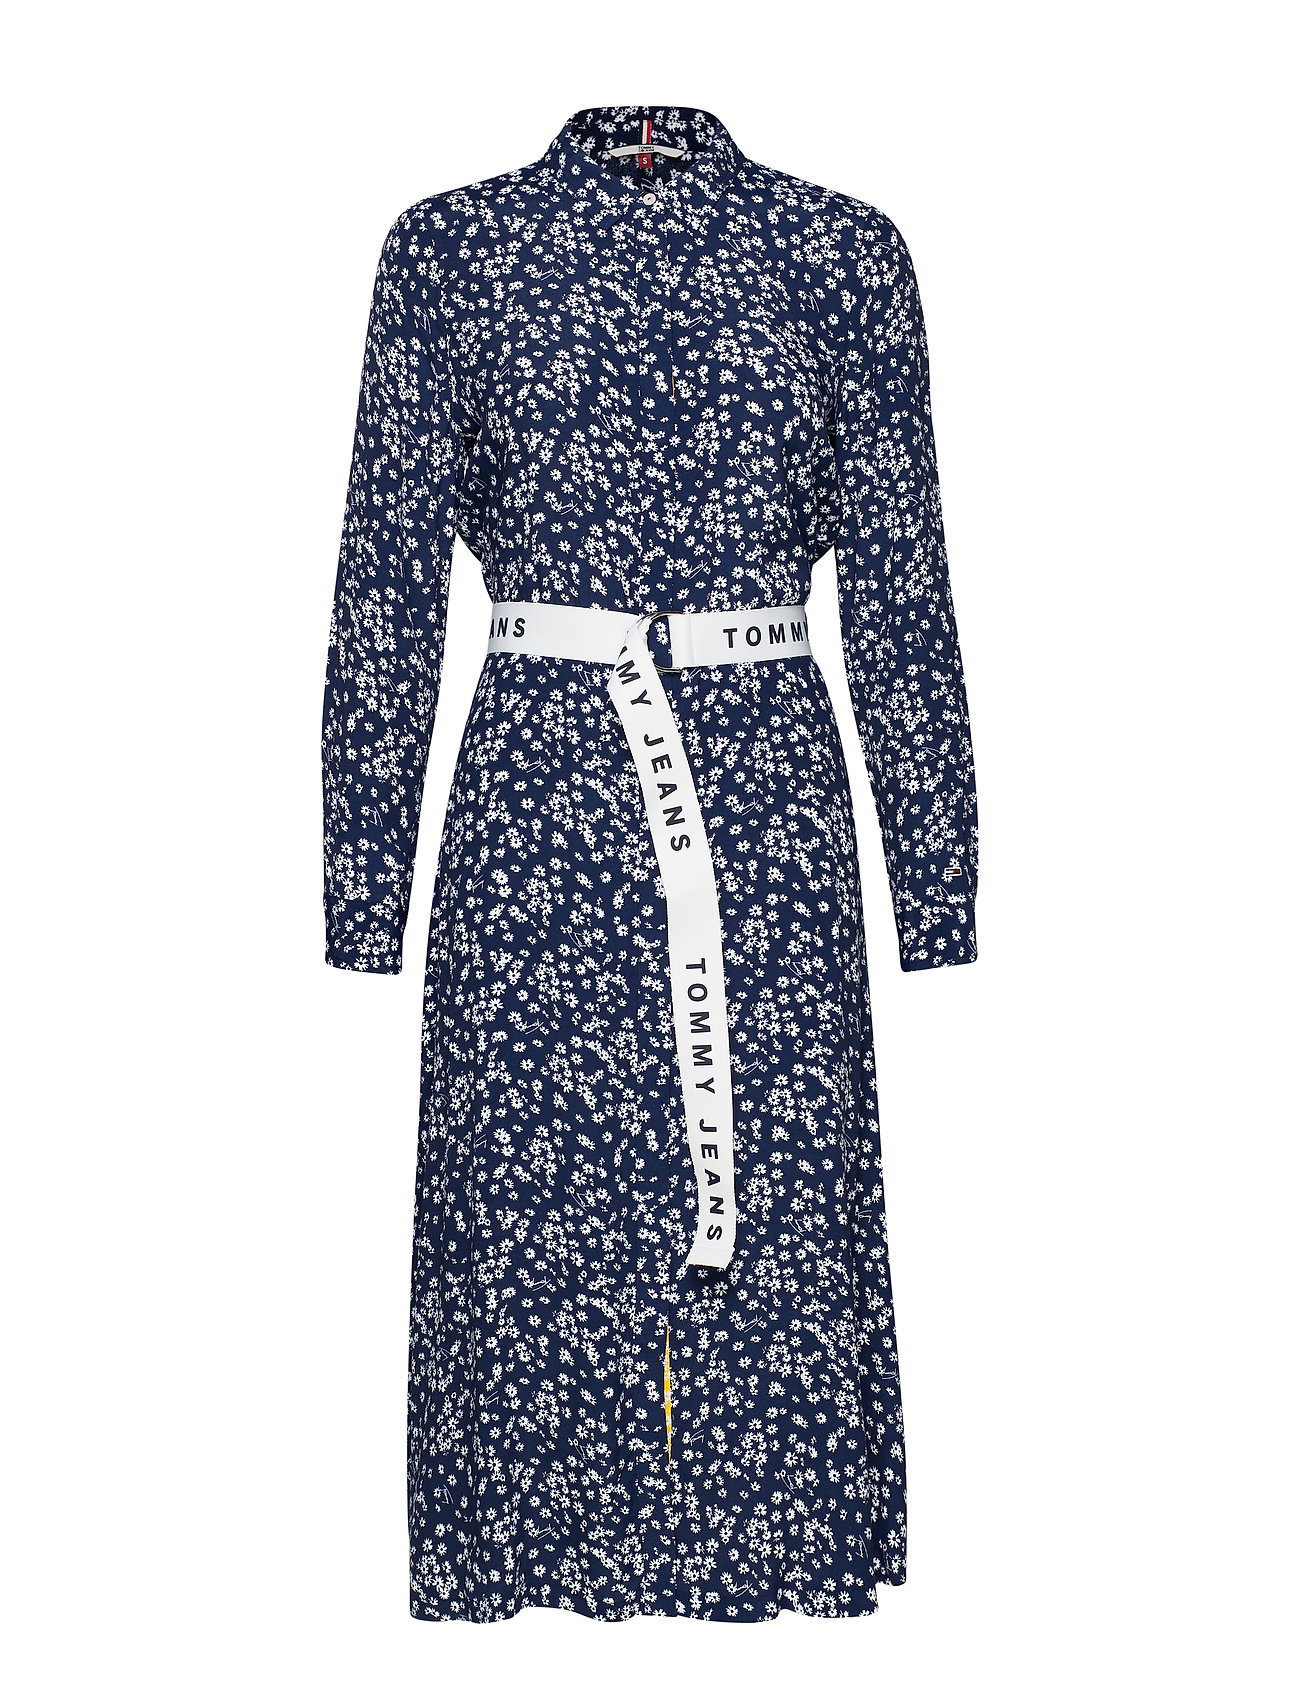 Tommy Jeans TJW PRINT MIX SHIRT DRESS - SCATTERED FLORAL / BLUE DEPTHS